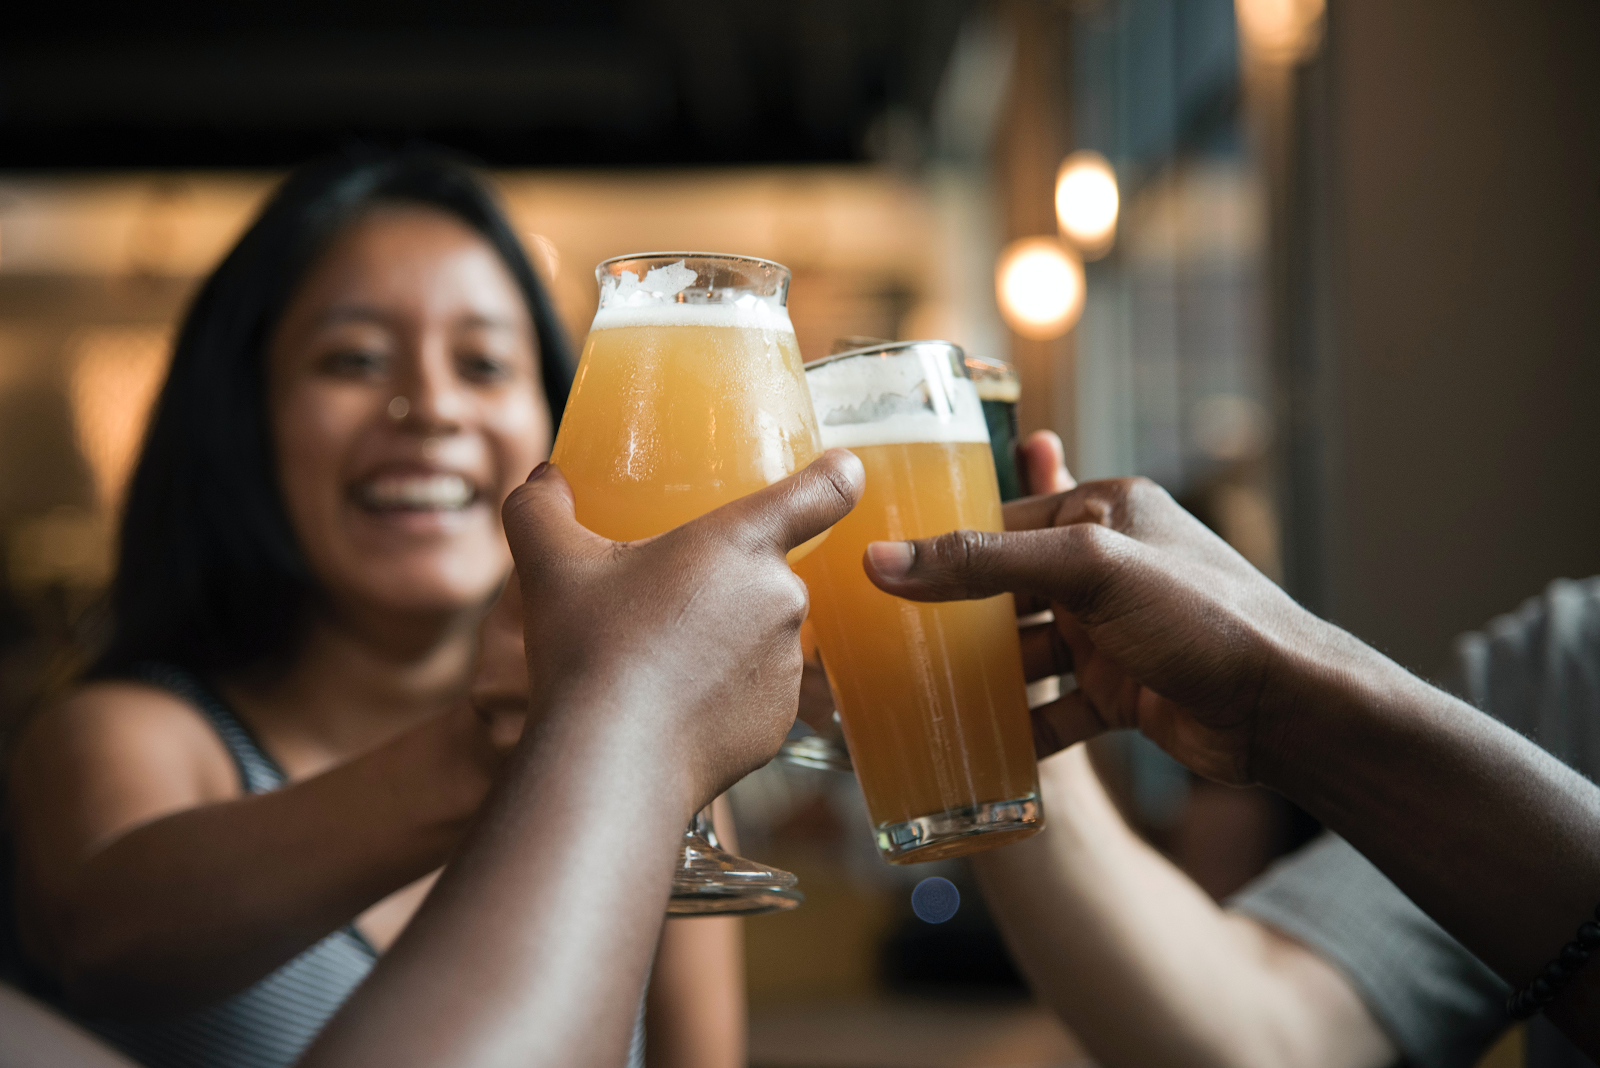 Coworkers enjoying cold beer as part of their employee stipends